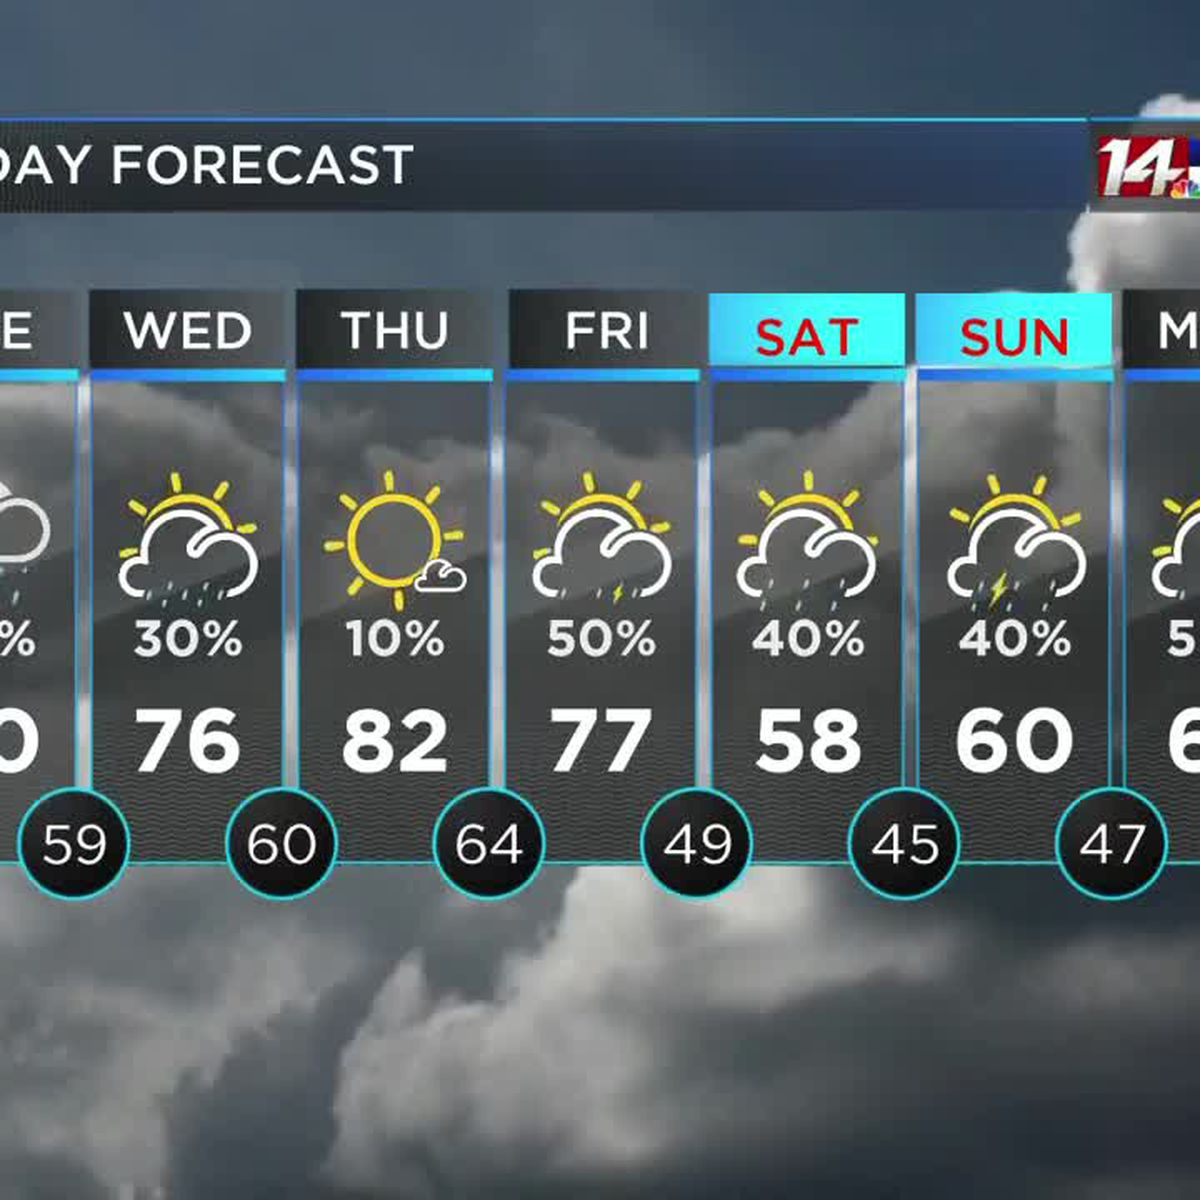 Isolated showers still possible, warmer weather on the way